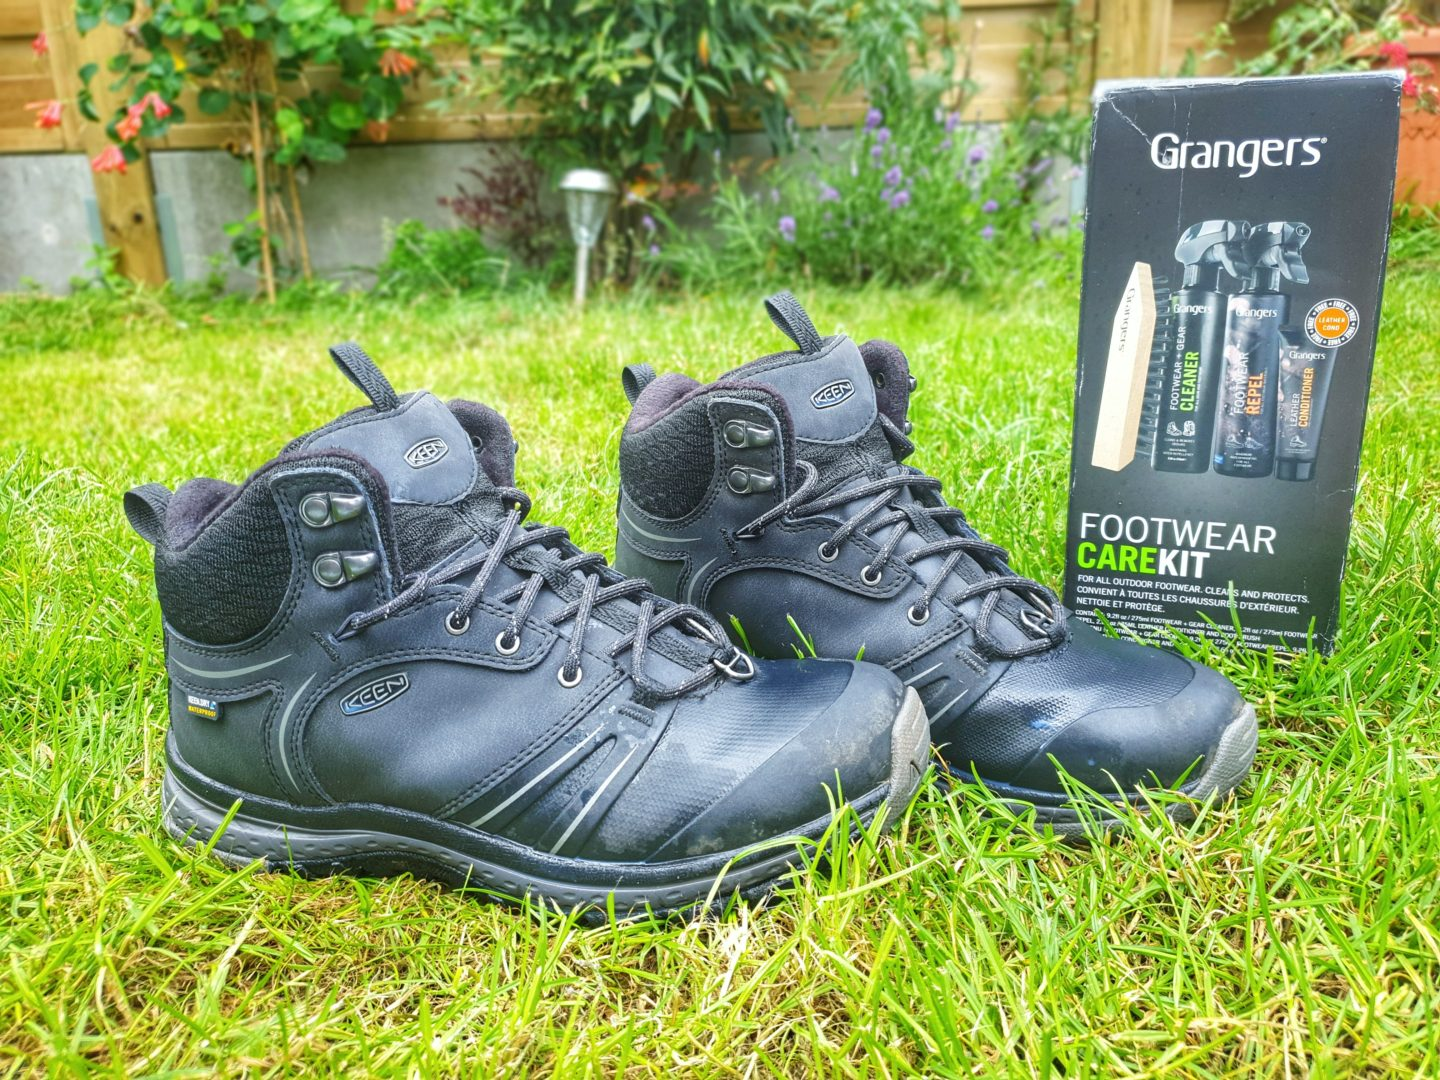 Grangers Footwear Care Kit and clean boots